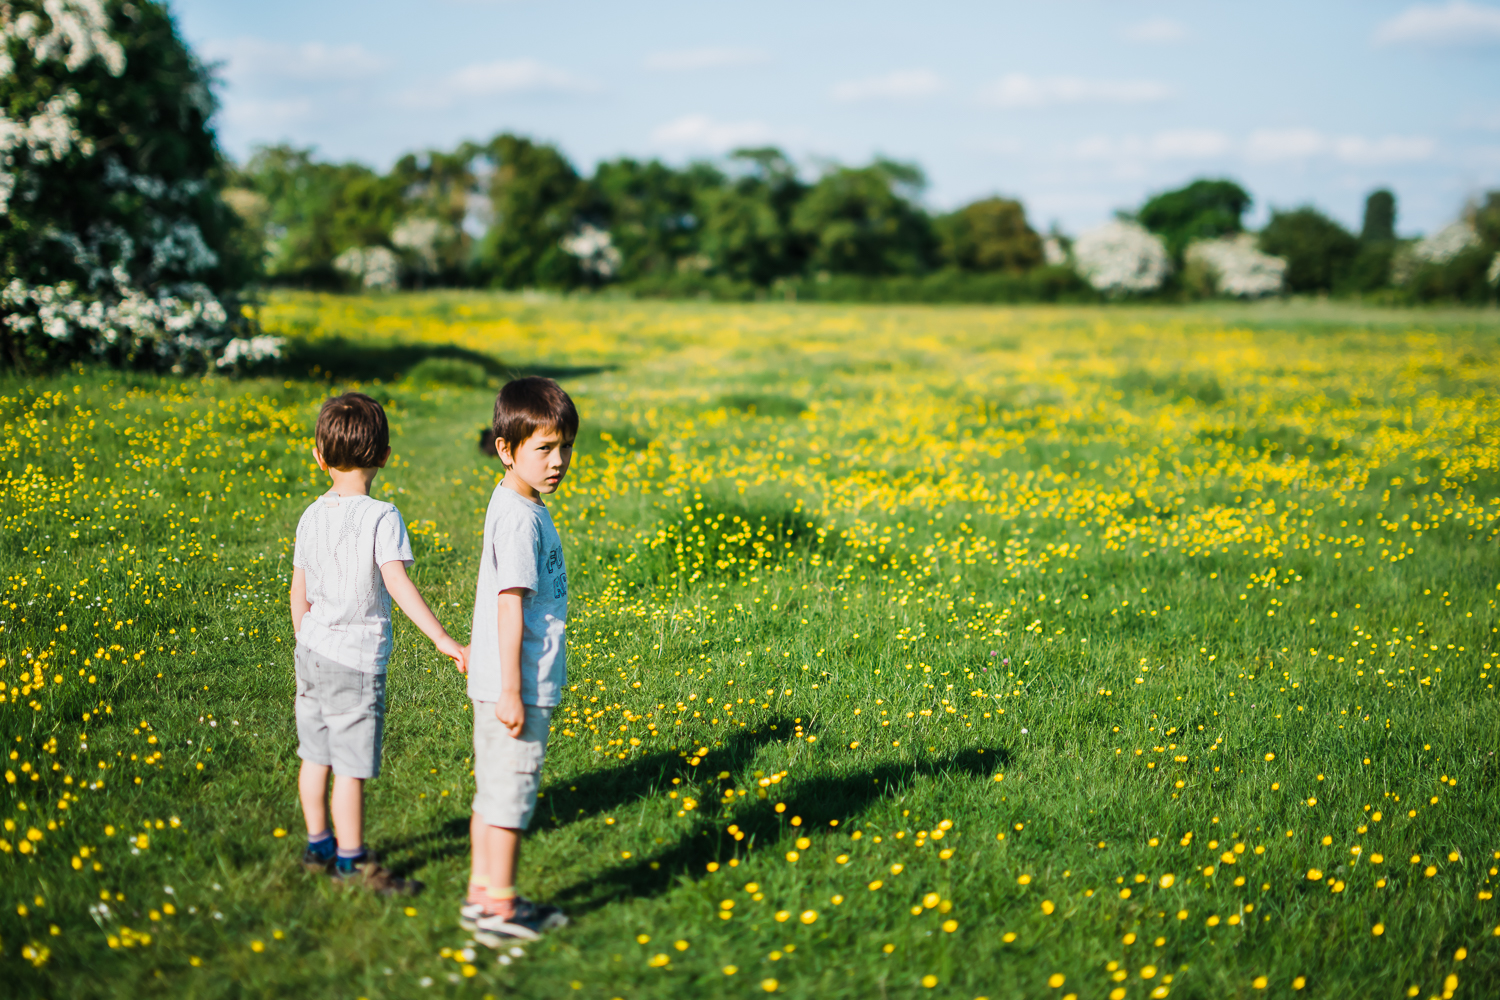 Children holding hands in a buttercup field